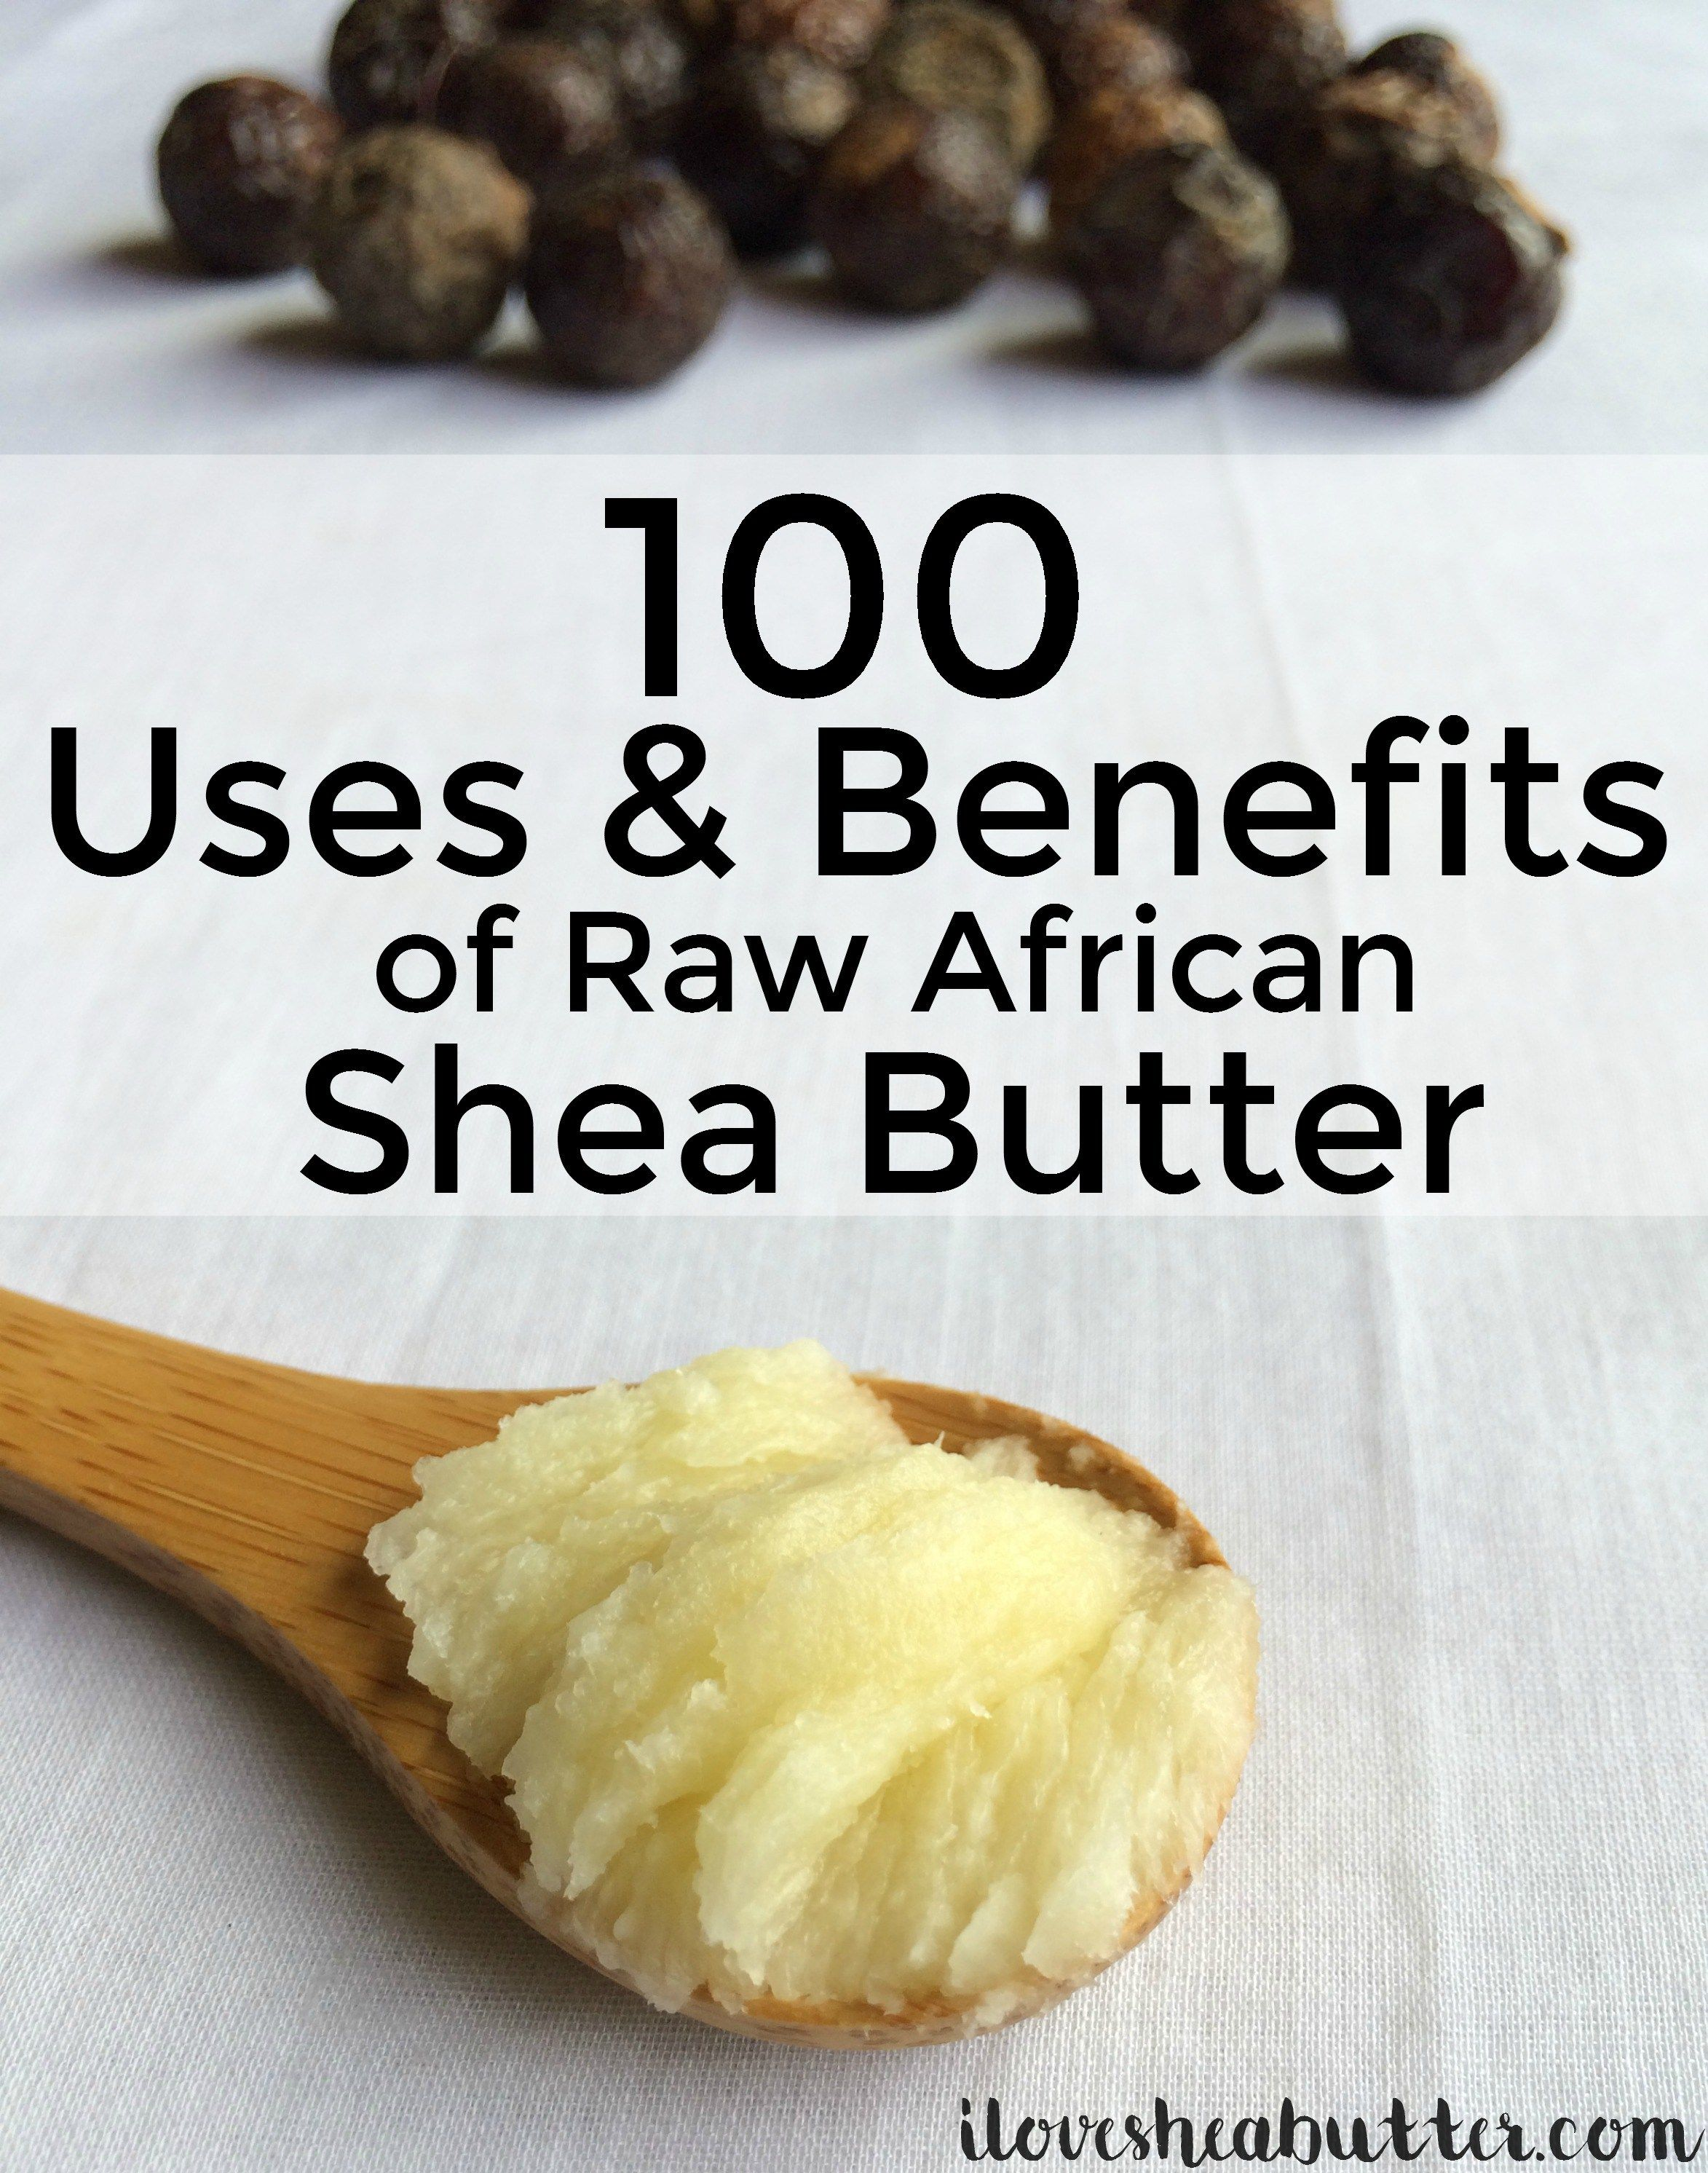 The benefits of raw African shea butter are many! From healing chapped lips  to keeping your wooden furniture shiny, here are 100 benefits of raw African  sh